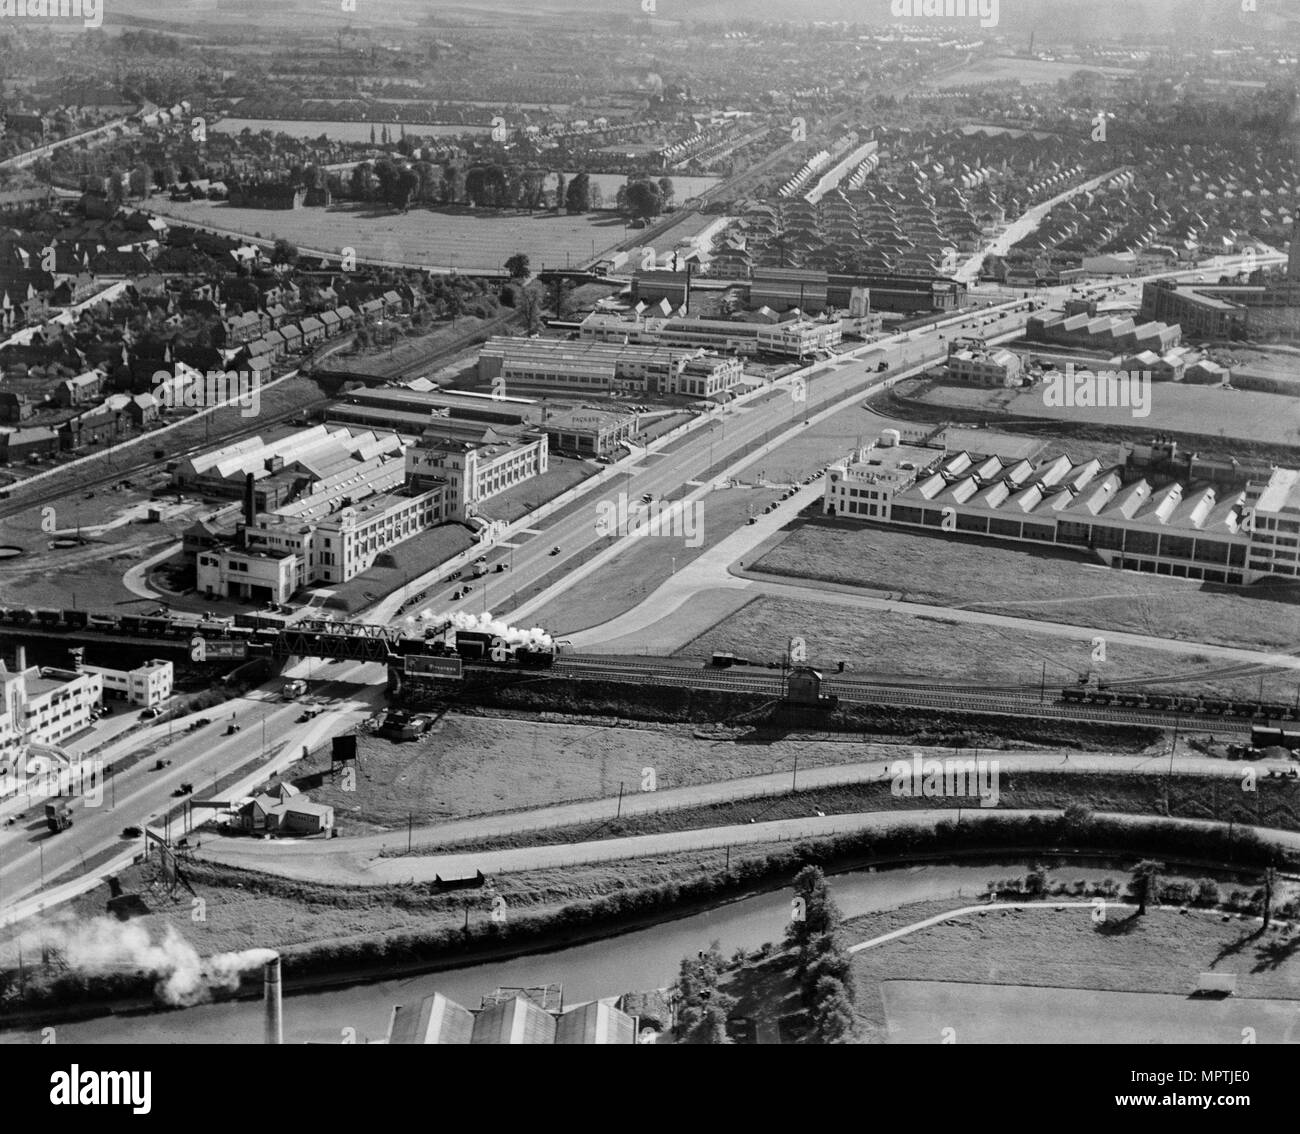 Great West Road, Brentford, Middlesex, 1937. Artist: Aeropictorial Ltd. - Stock Image